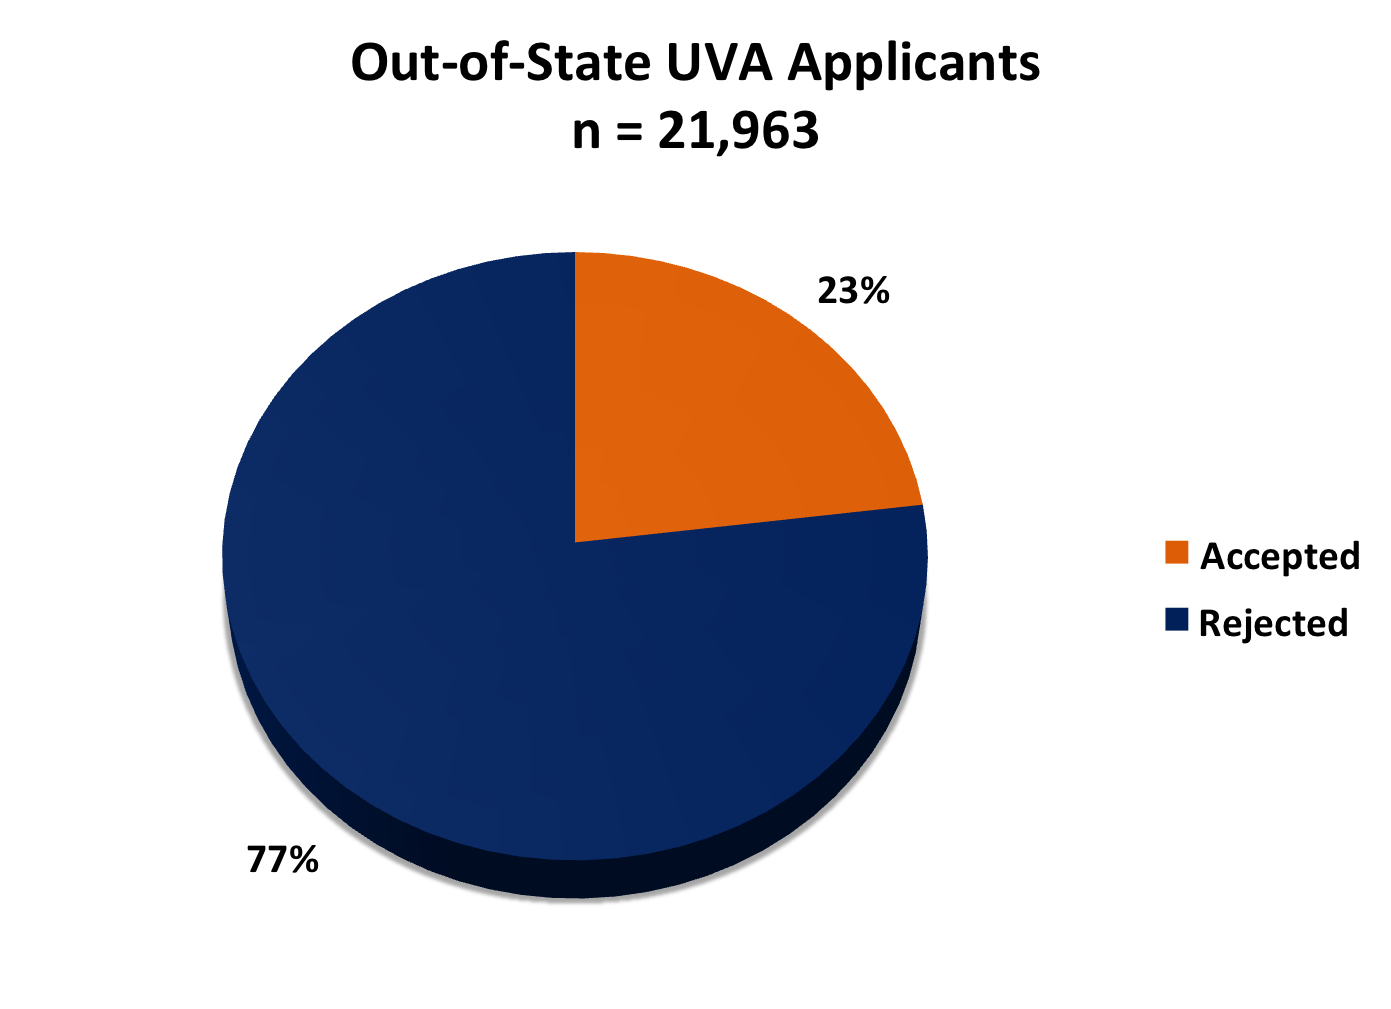 profiles in admission the university of virginia uva out of state applicants